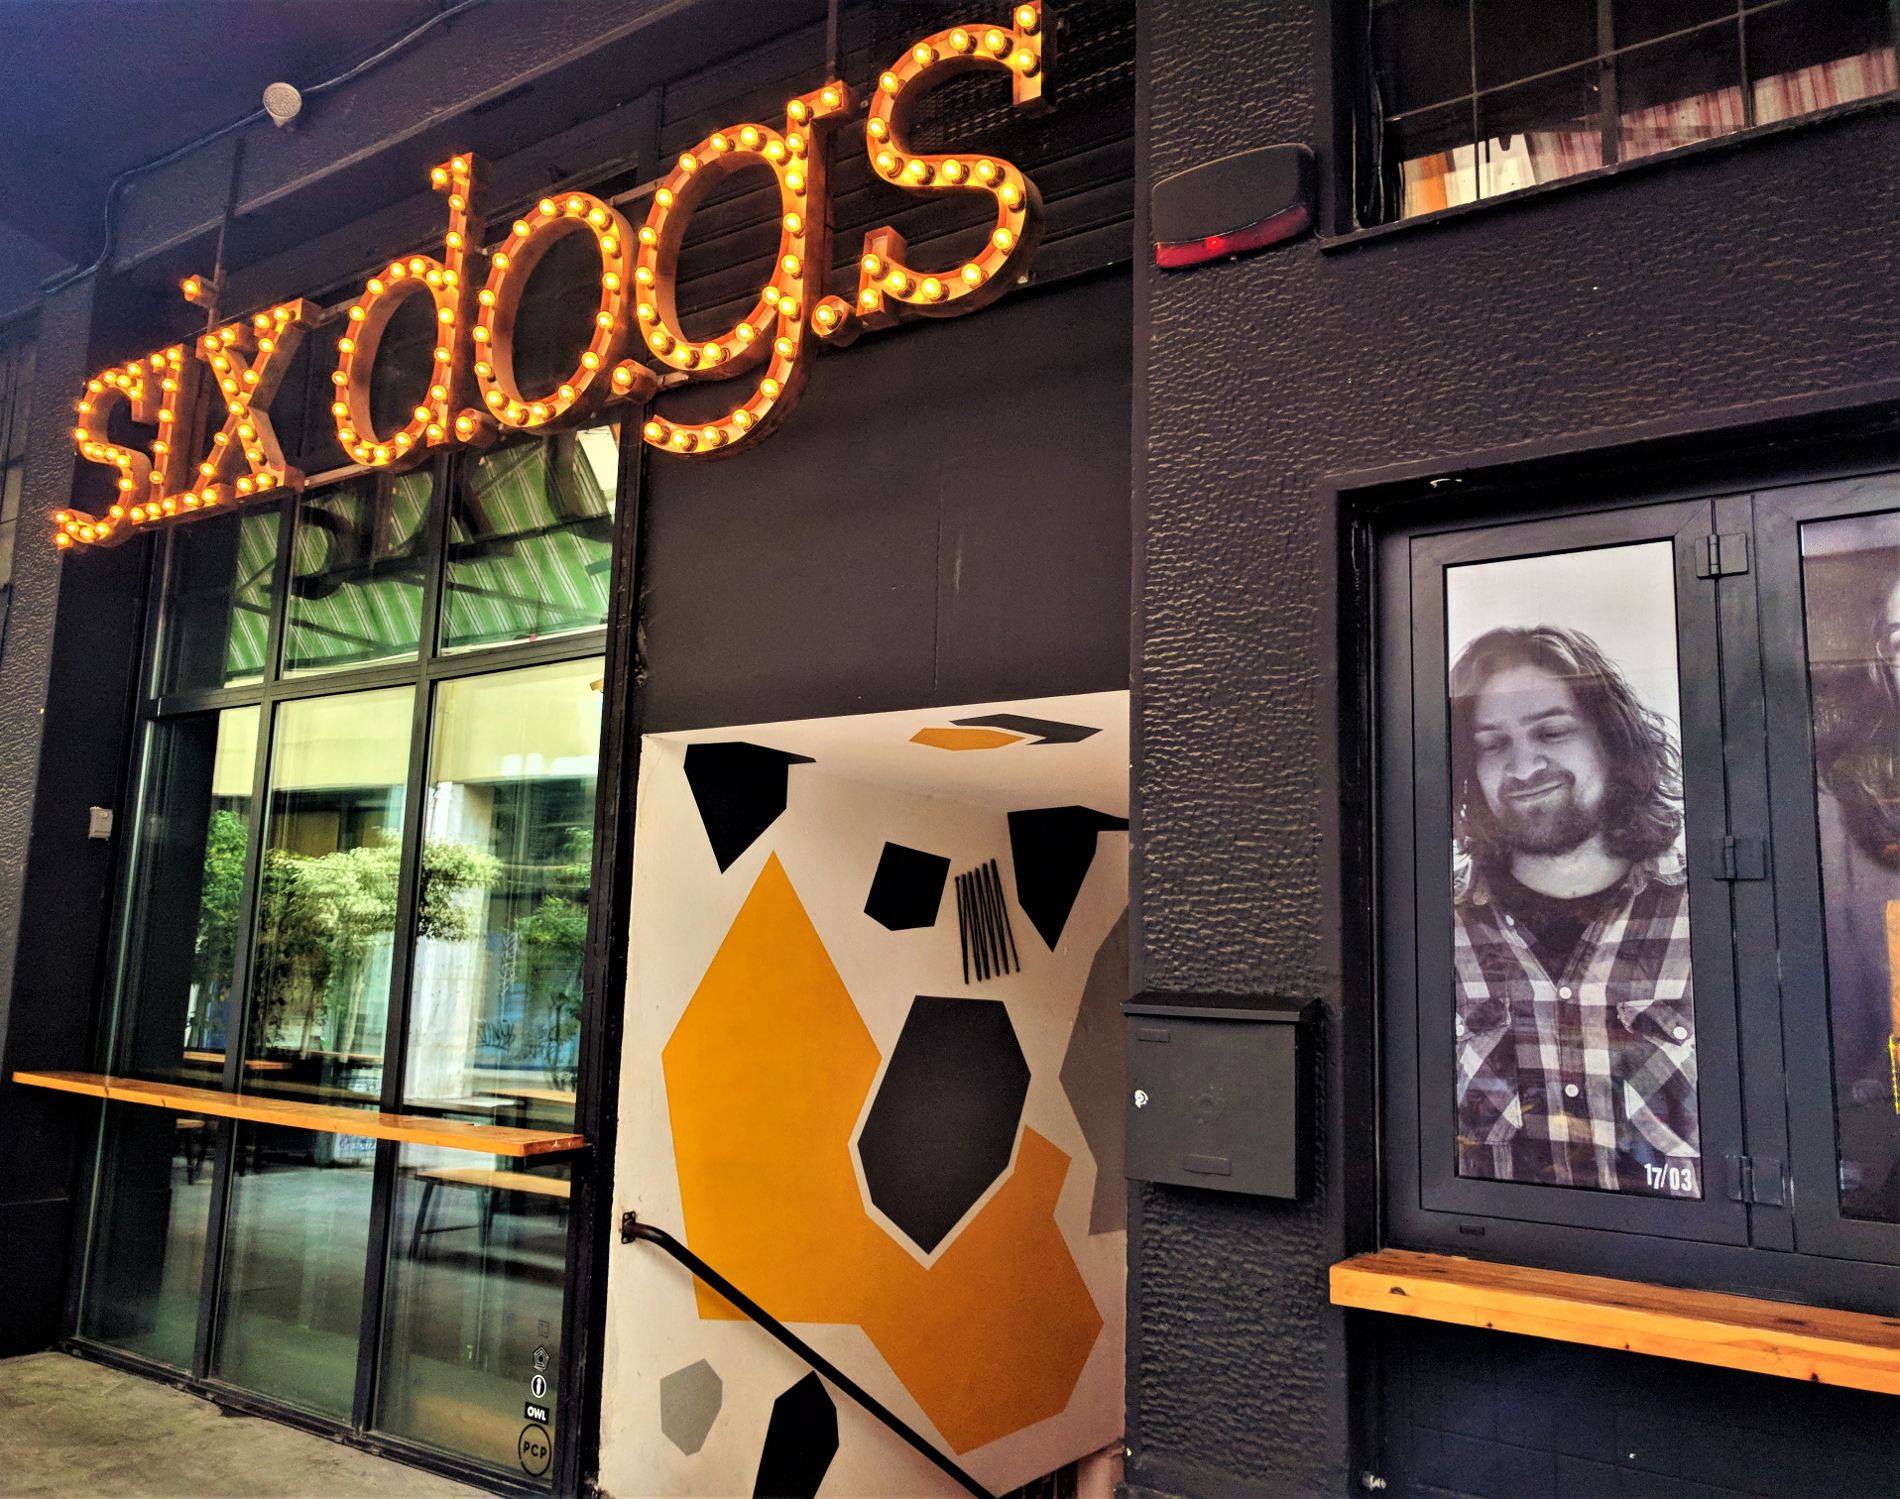 The  six d.o.g.s  cultural hub as seen from outside. Source: Truevoyagers